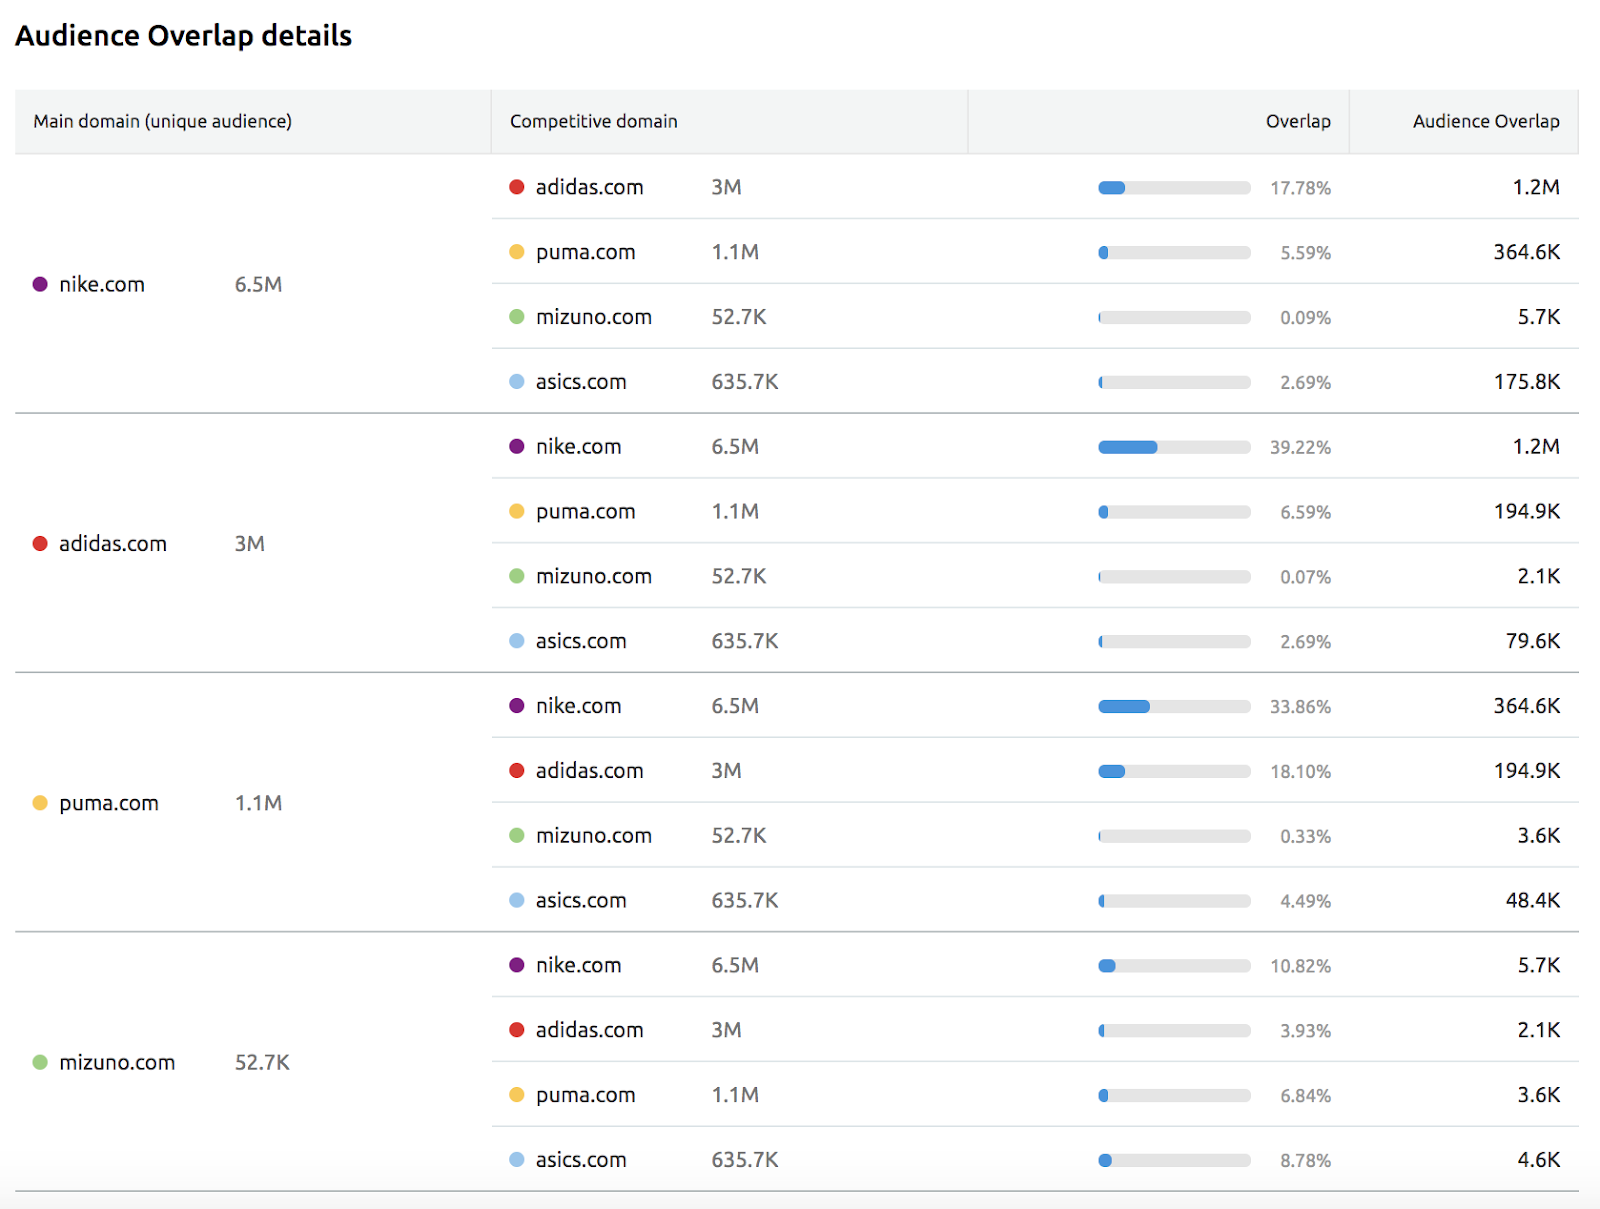 Traffic Analytics Audience Overlap Report image 2